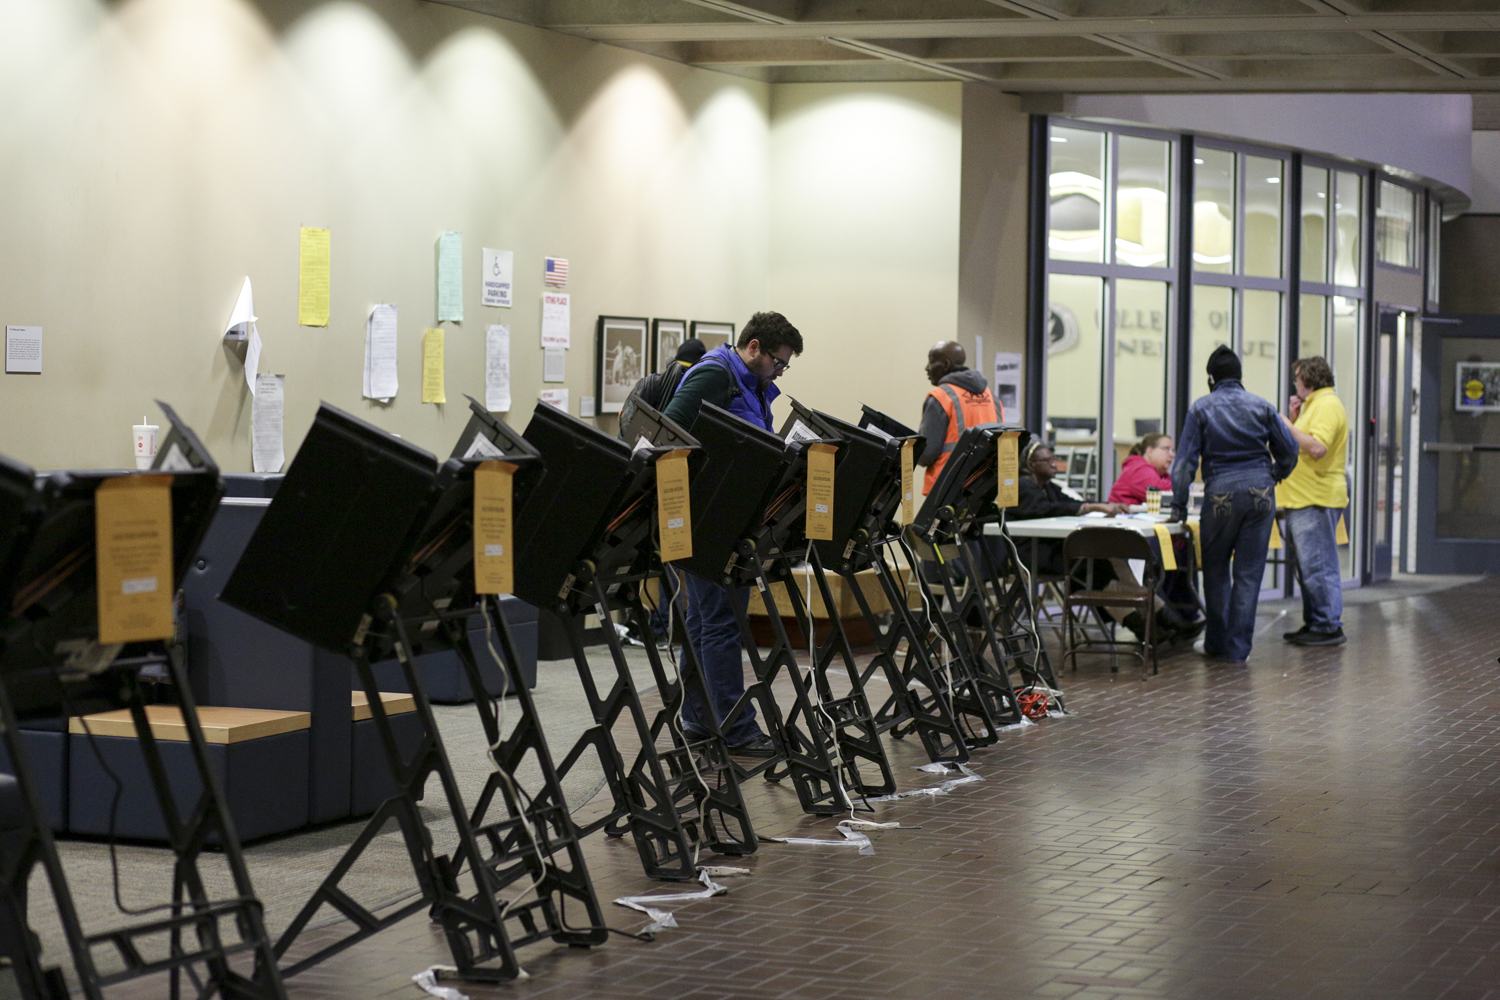 Students and community members voted in Posvar Hall Nov. 7, 2017. About 80 people cast their votes at the polling station.